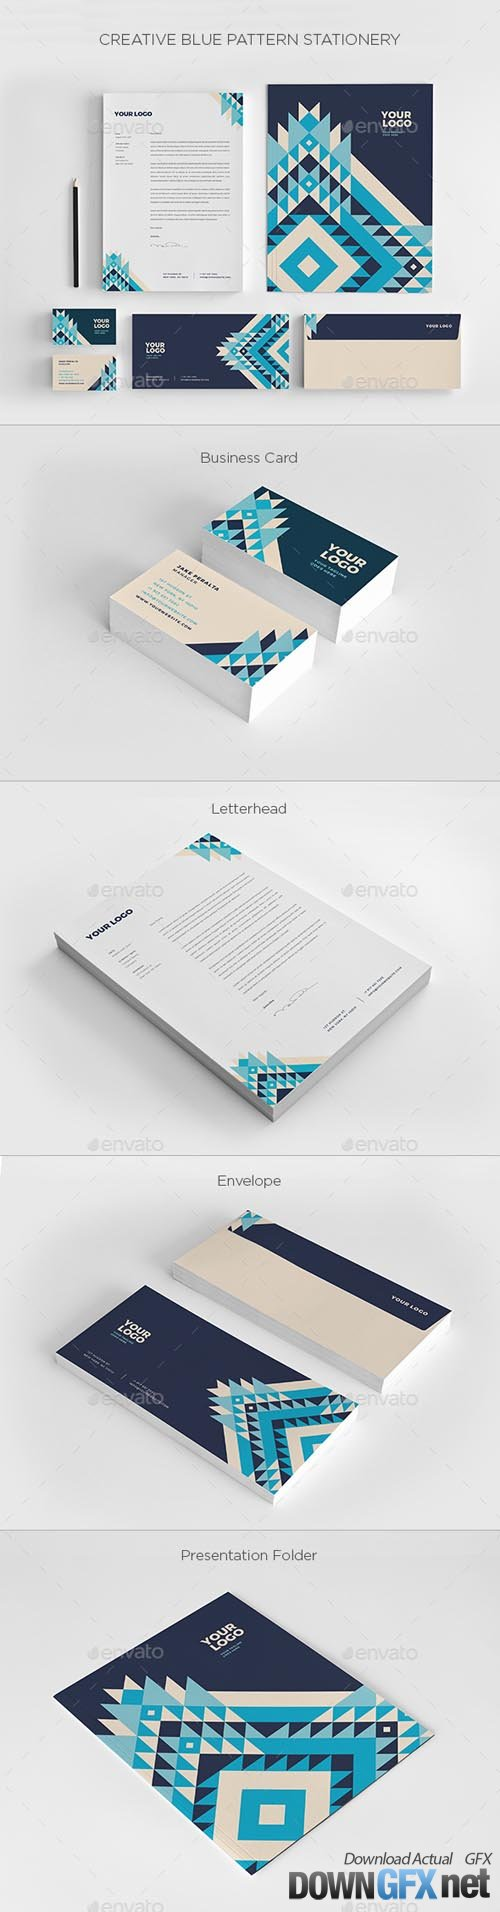 Creative Blue Pattern Stationery 20591811